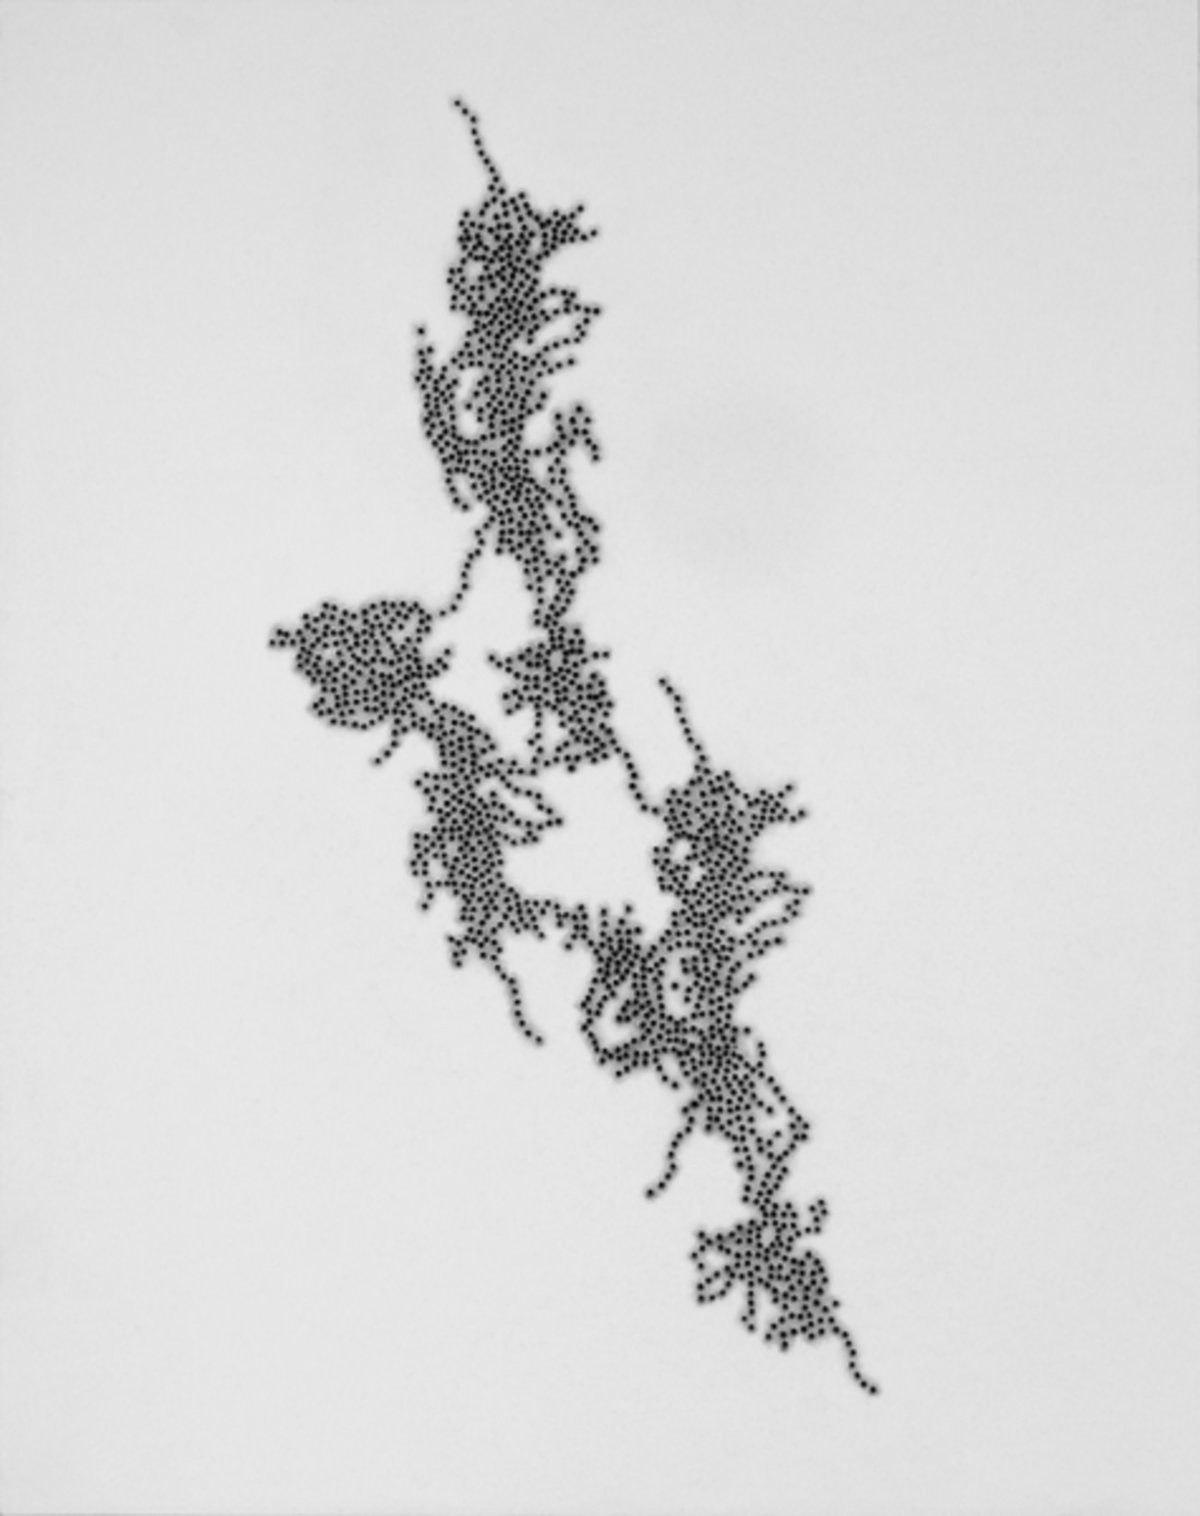 Taney Roniger, Inscape Series (Freeform #1, Graphite), 2015